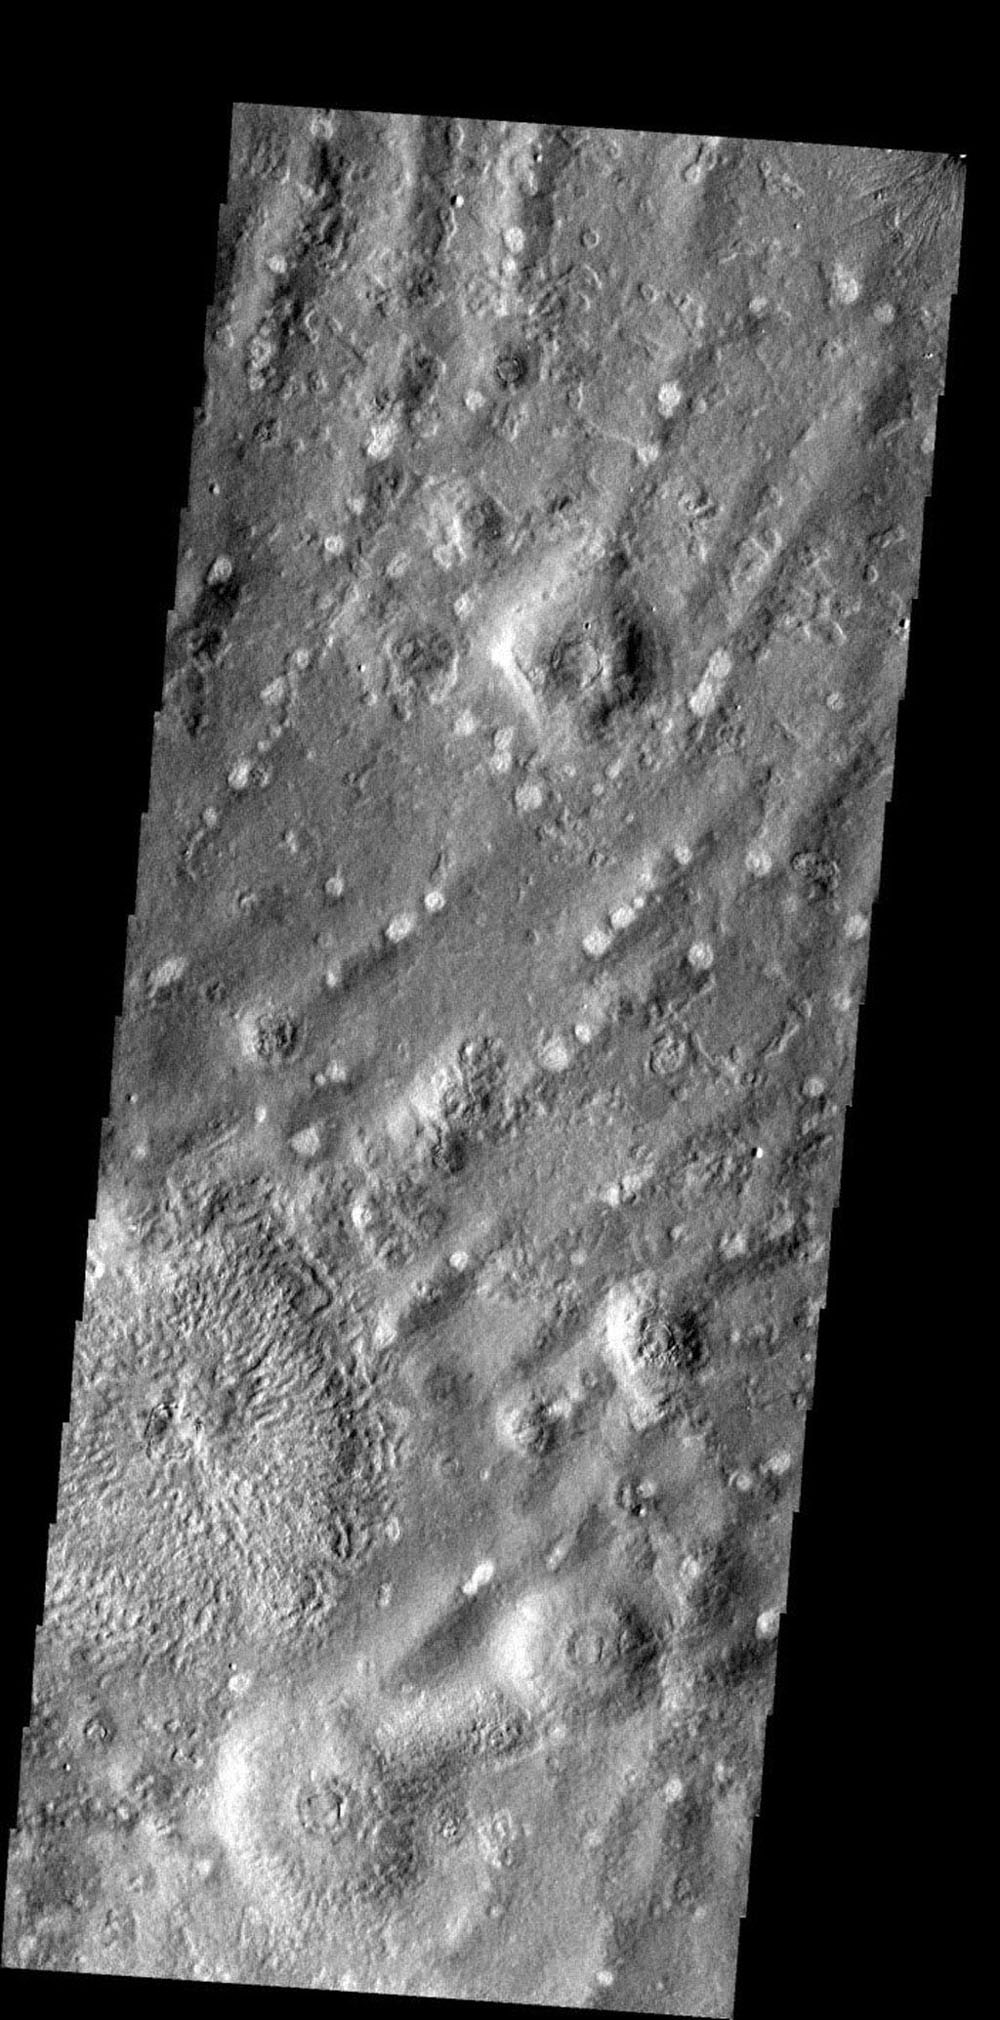 This ridged and pockmarked surface is located west of Phlegra Montes in the northern plains on Mars as seen by NASA's Mars Odyssey spacecraft.